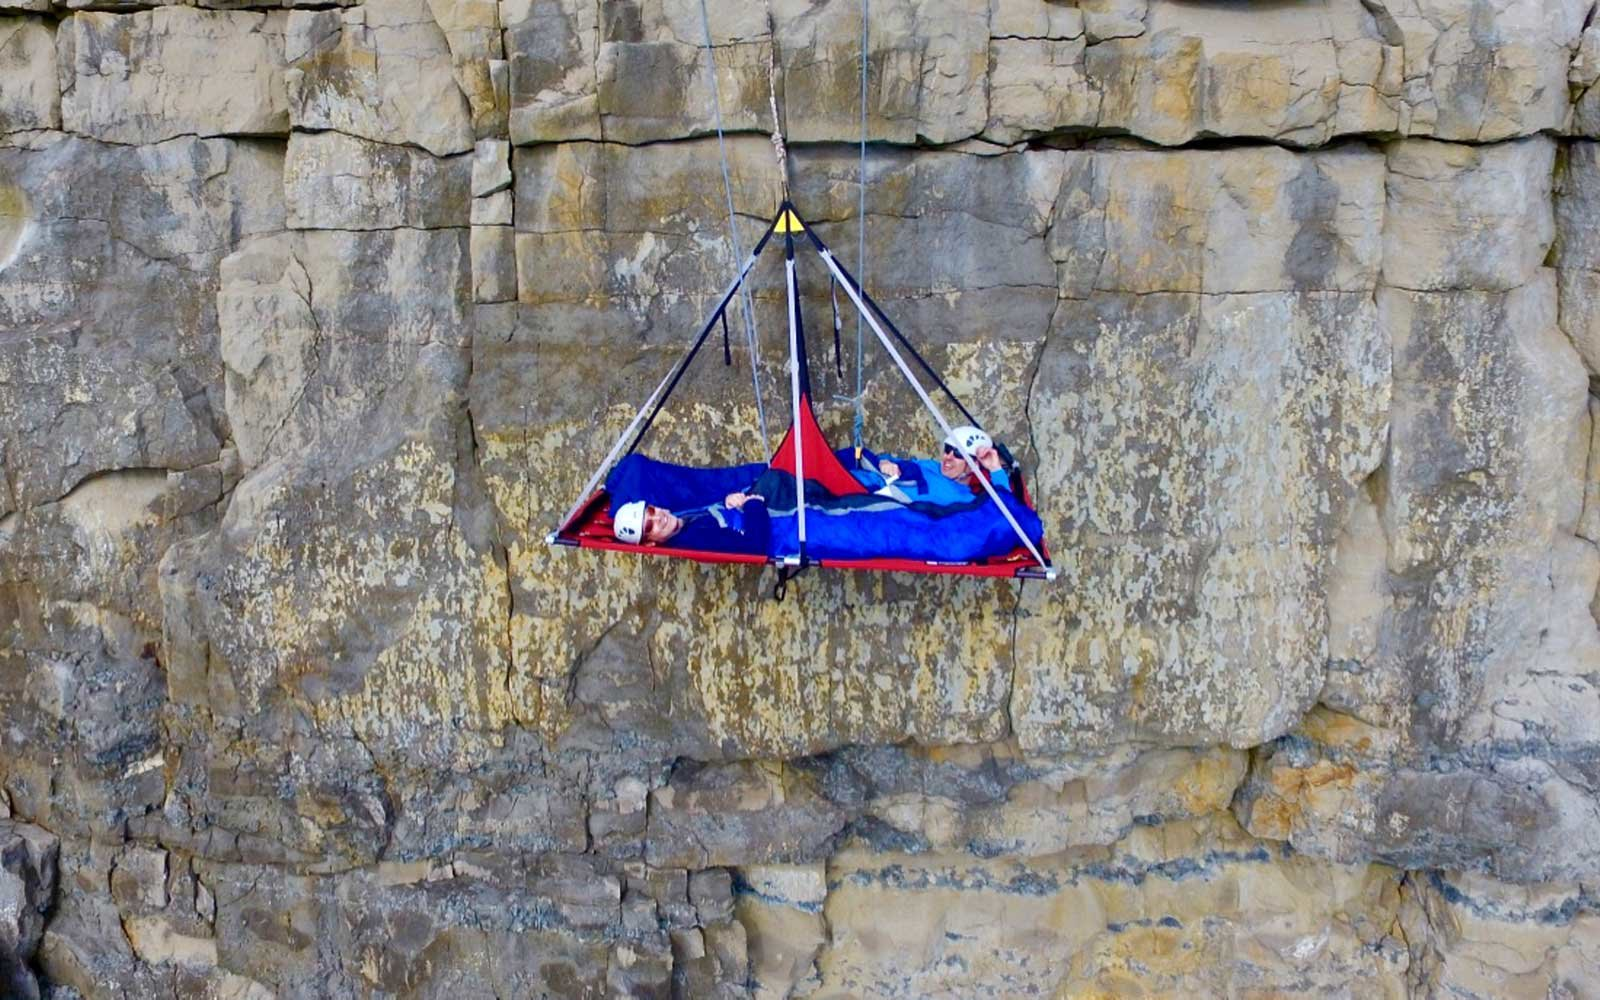 u0026 39 cliff camping u0026 39  lets you sleep in a bed dangling 60 feet